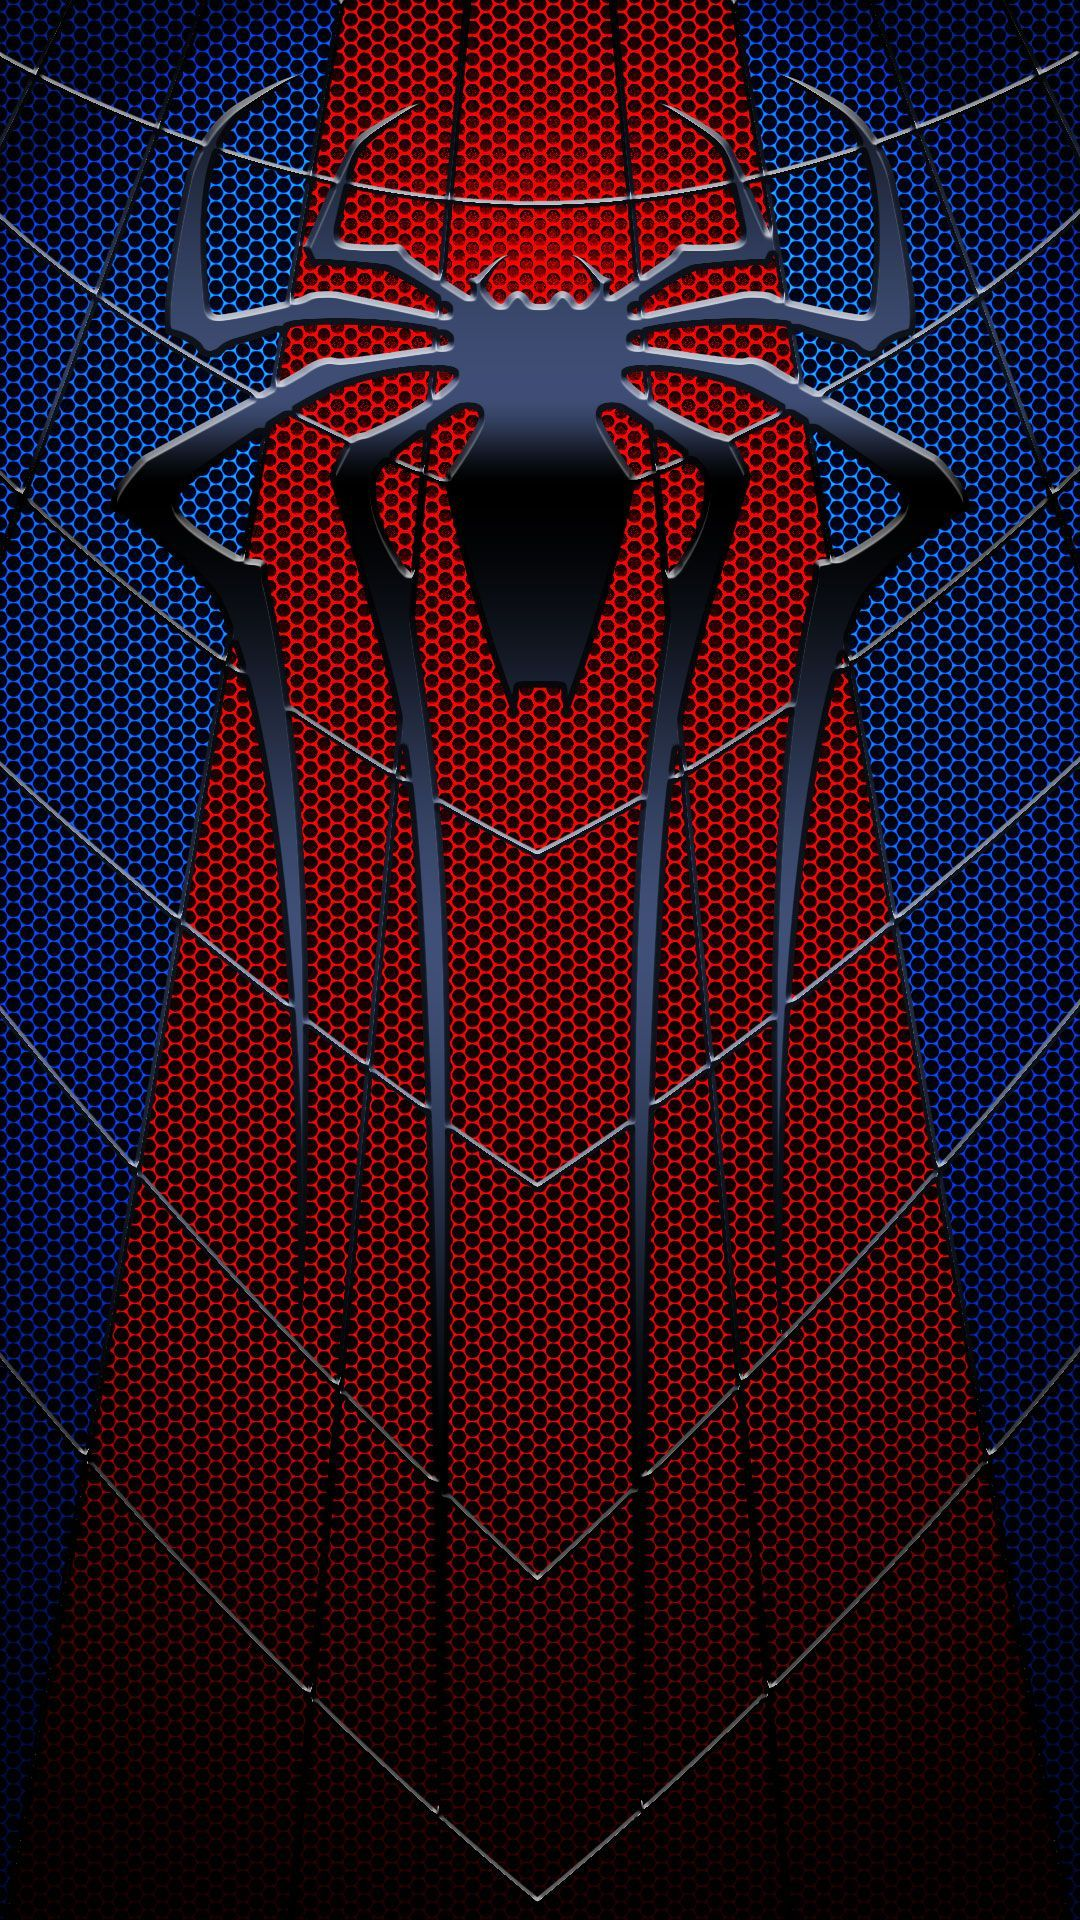 1080x1920 Spiderman phone wallpaper Group (55+)